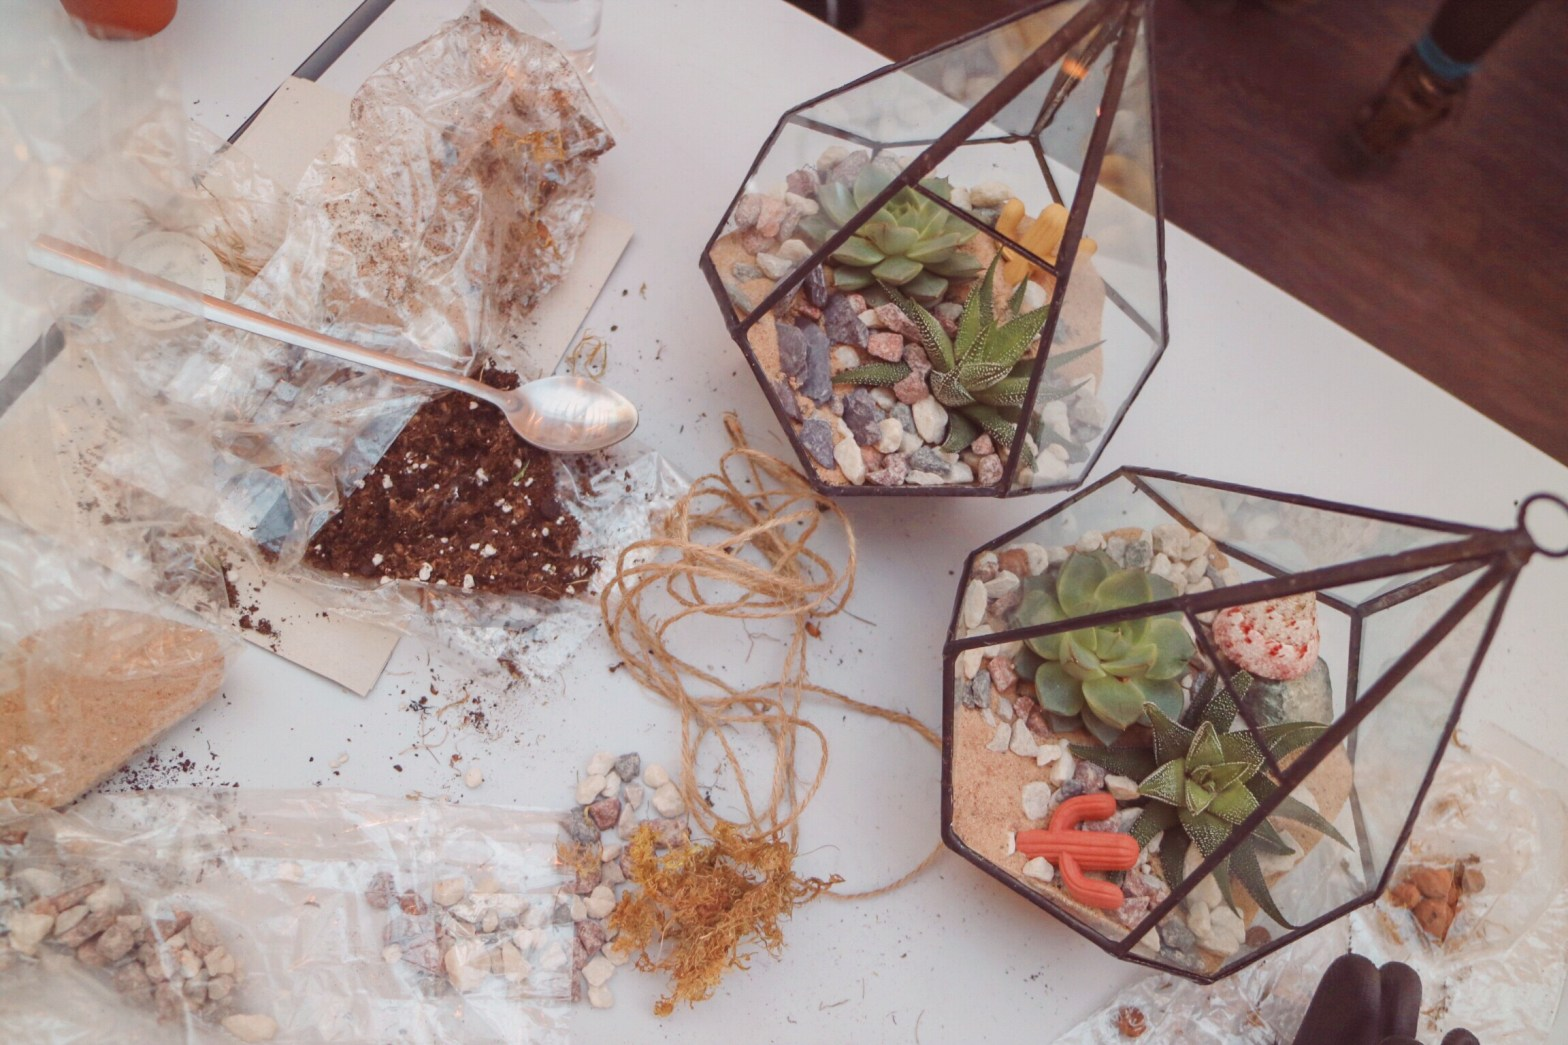 How to make a Terrarium - image of two terrariums made up with remnants of soil and pebbles around the table